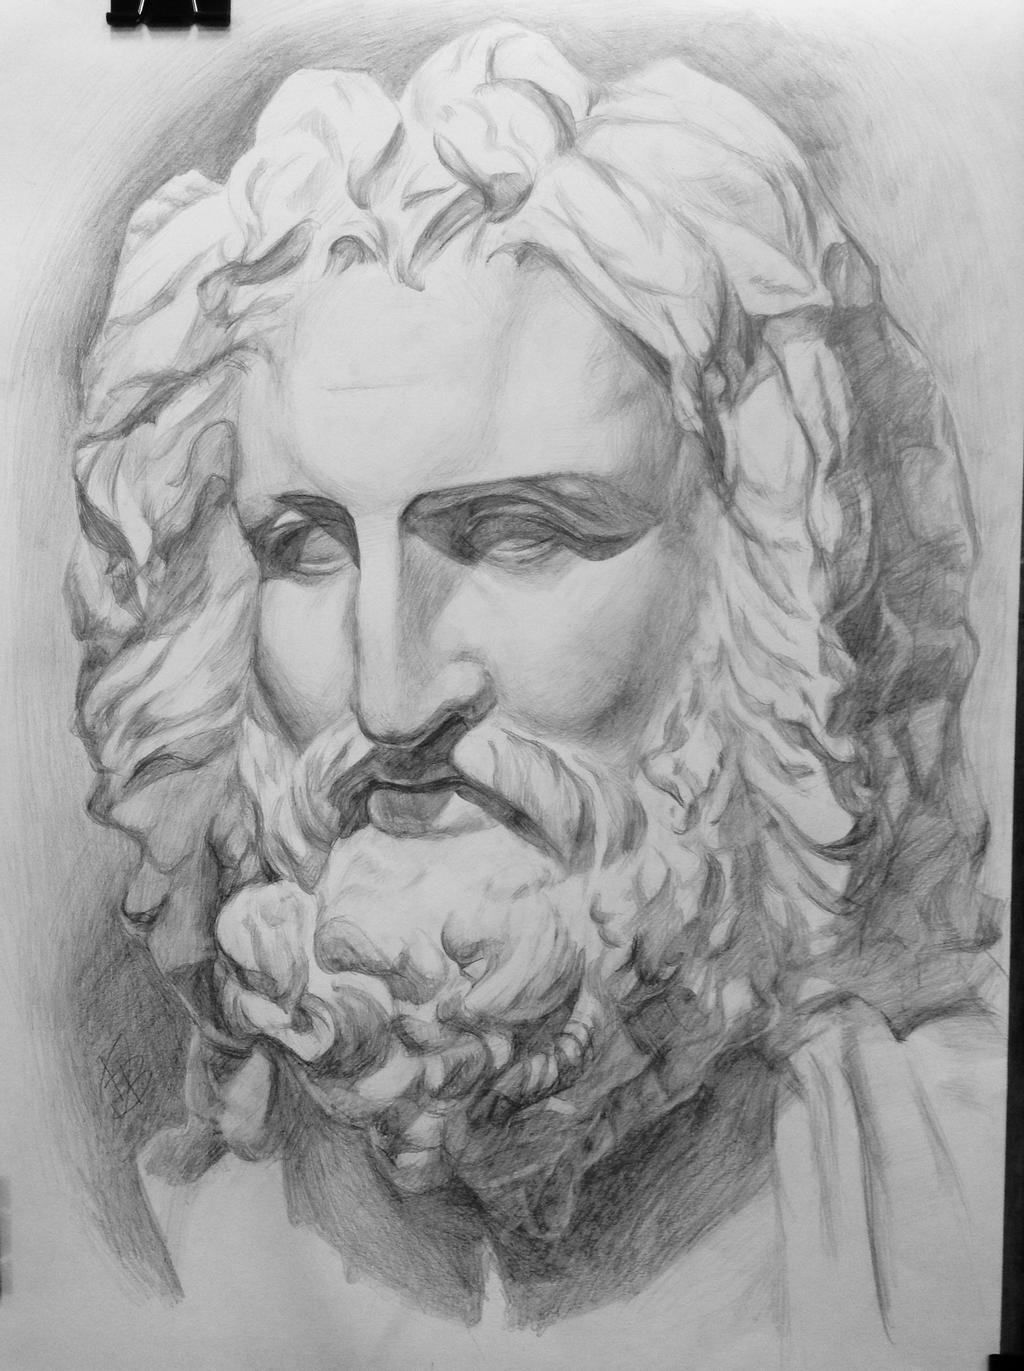 drawings of zeus zeus the look of happiness drawing by deanna maxwell zeus of drawings